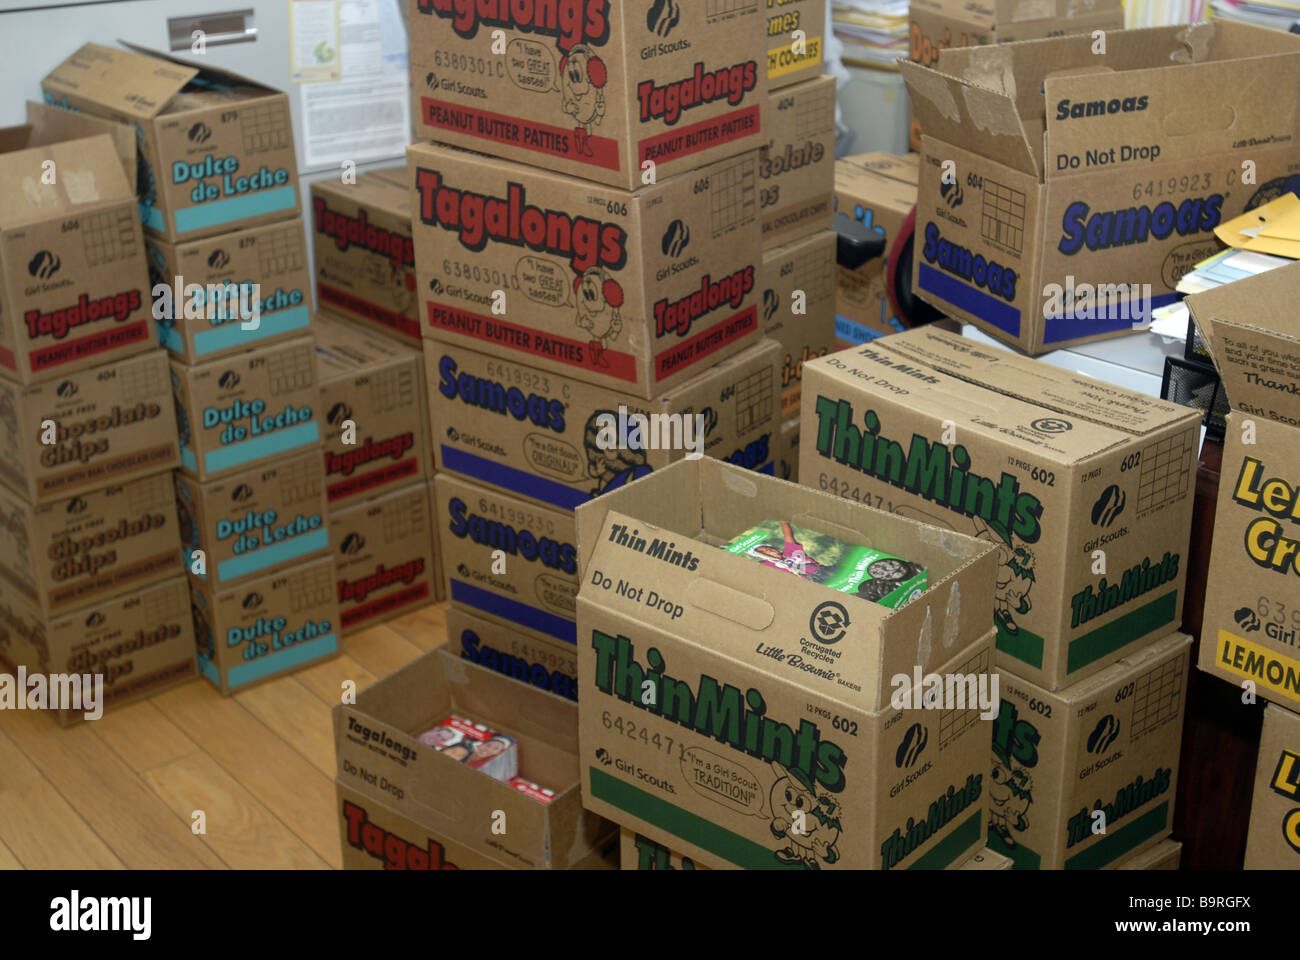 Boxes of Girl Scout cookies sold by Upper West Side Troop 3068 wait to be distributed in New York - Stock Image